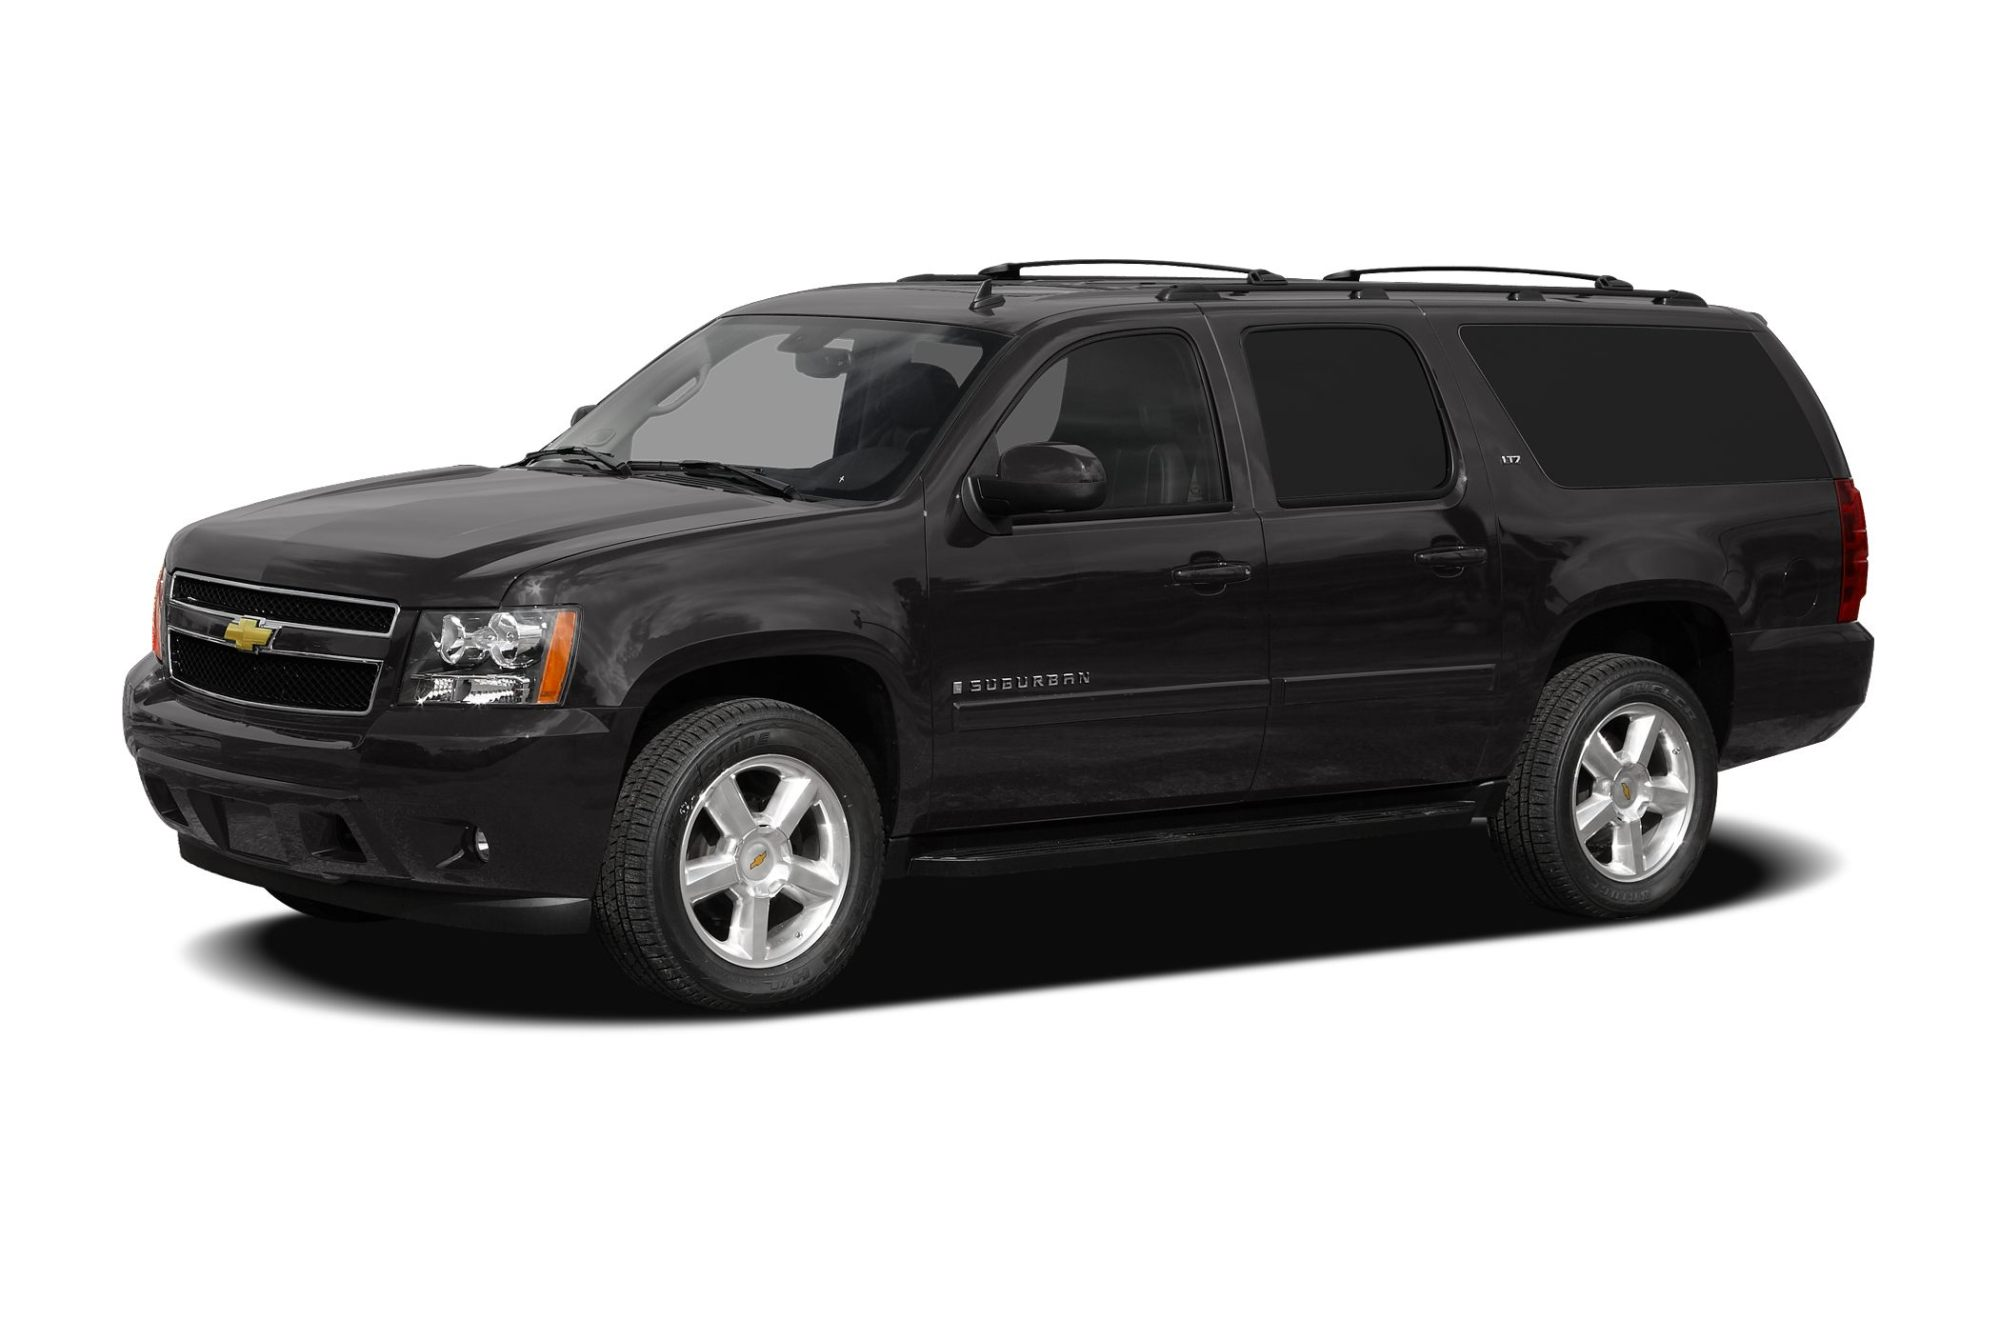 hight resolution of 2000 chevy suburban owner manual